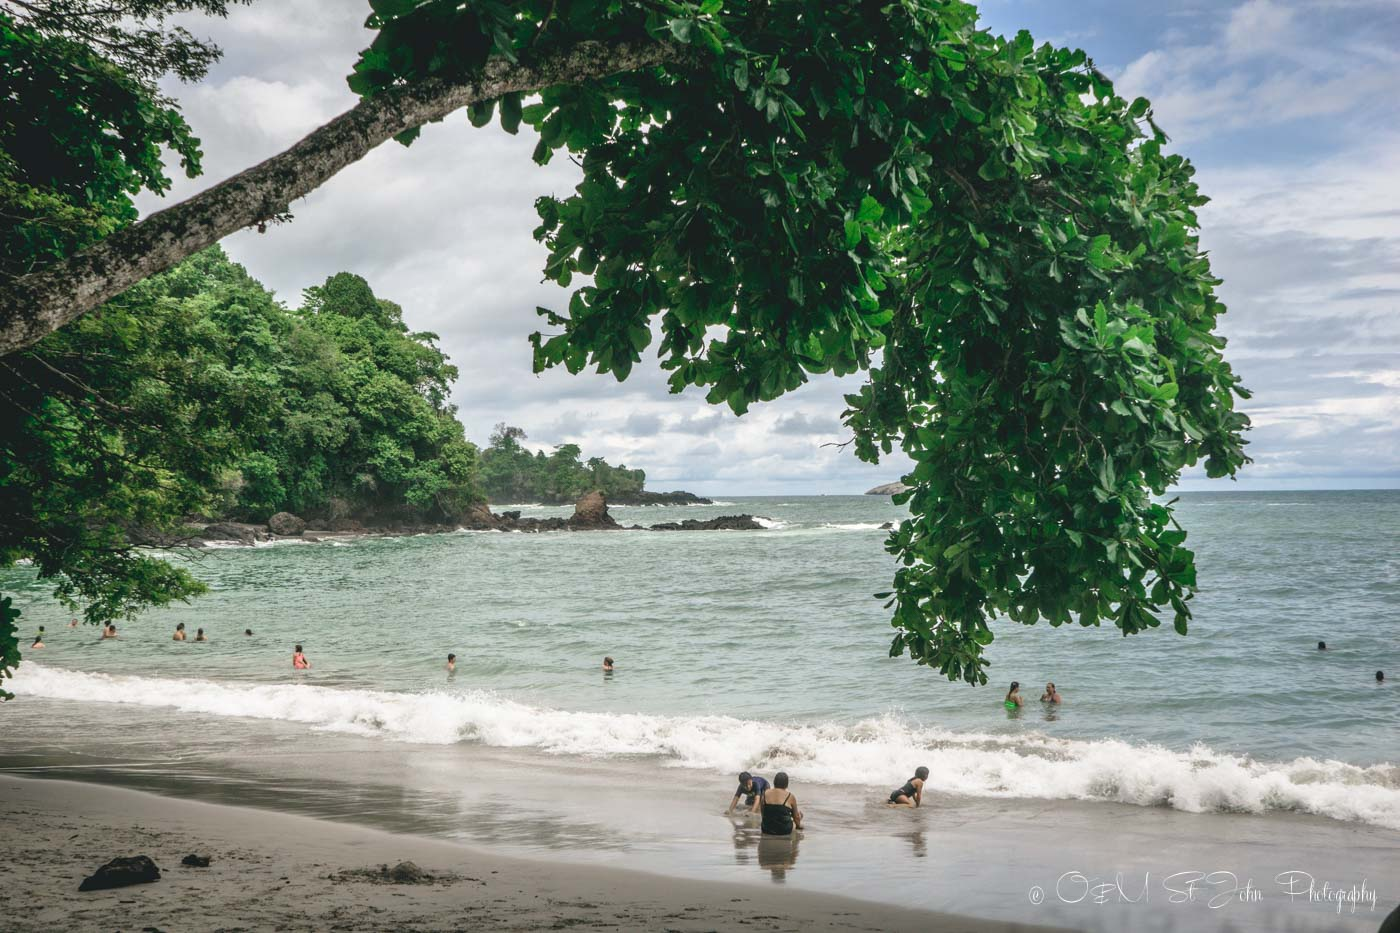 Manuel Antonio National Park: Manuel Antonio Beach is a great spot if you are looking to relax and spend a few hours inside the park. Costa Rica